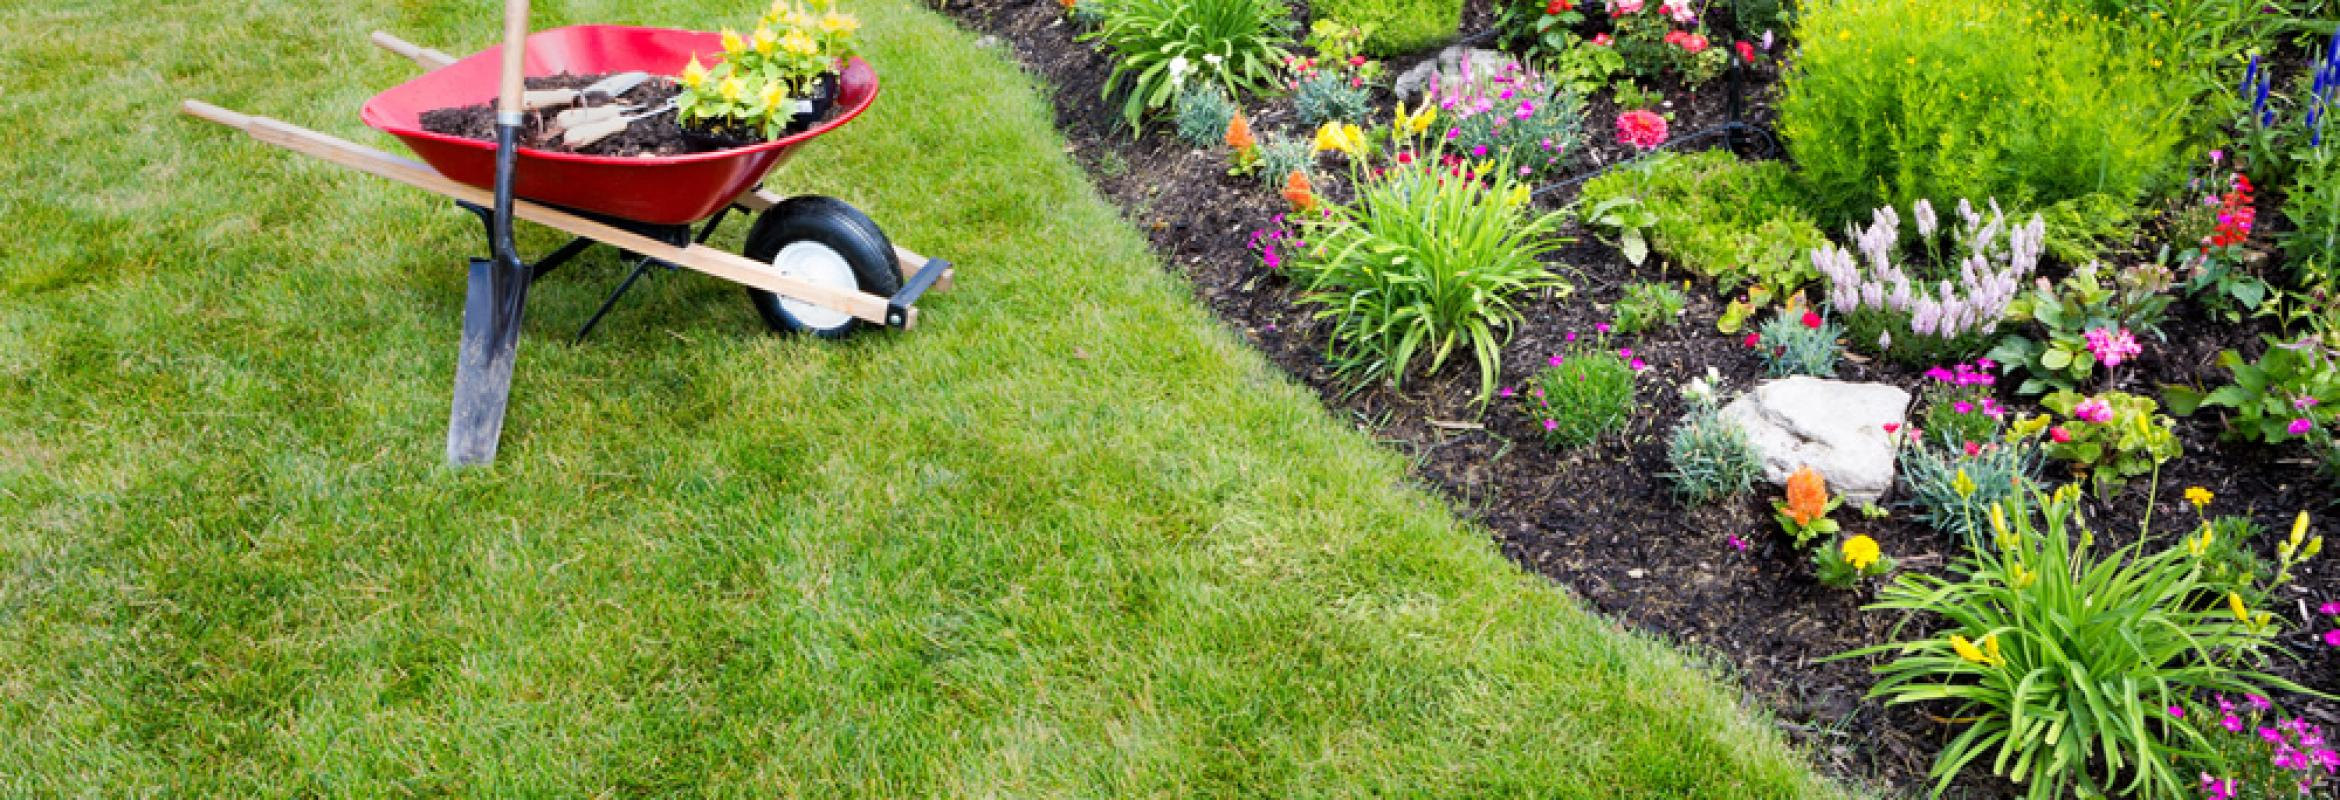 4 Seasons Landscaping Plus   Yorkville landscaping Company